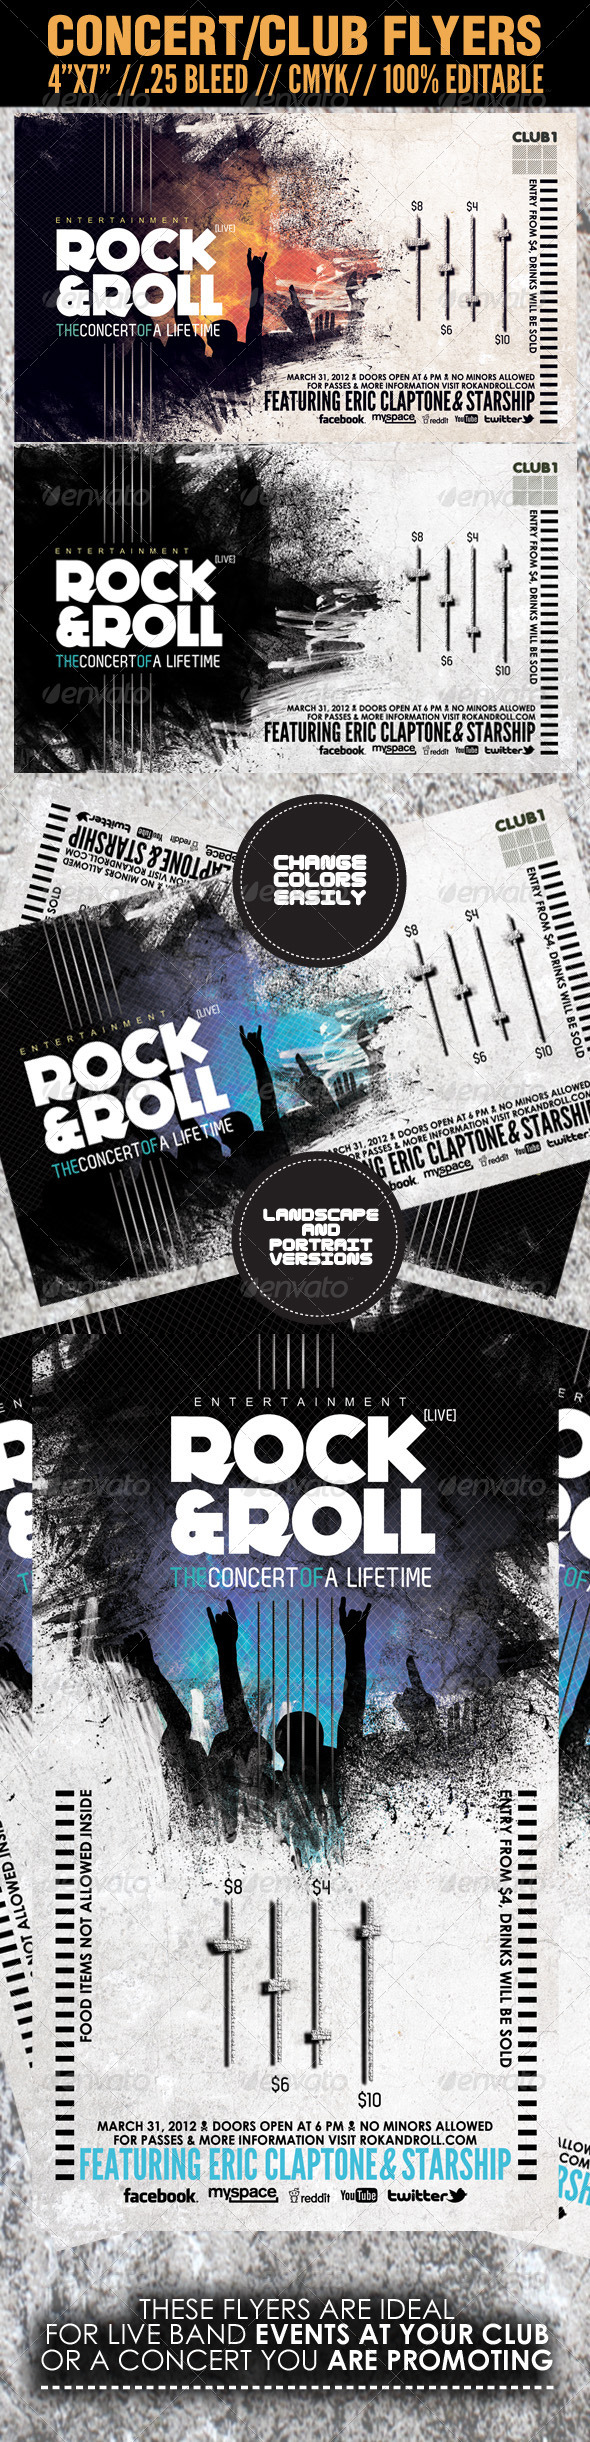 Concert Club Flyer Template - Rock and Roll - Concerts Events